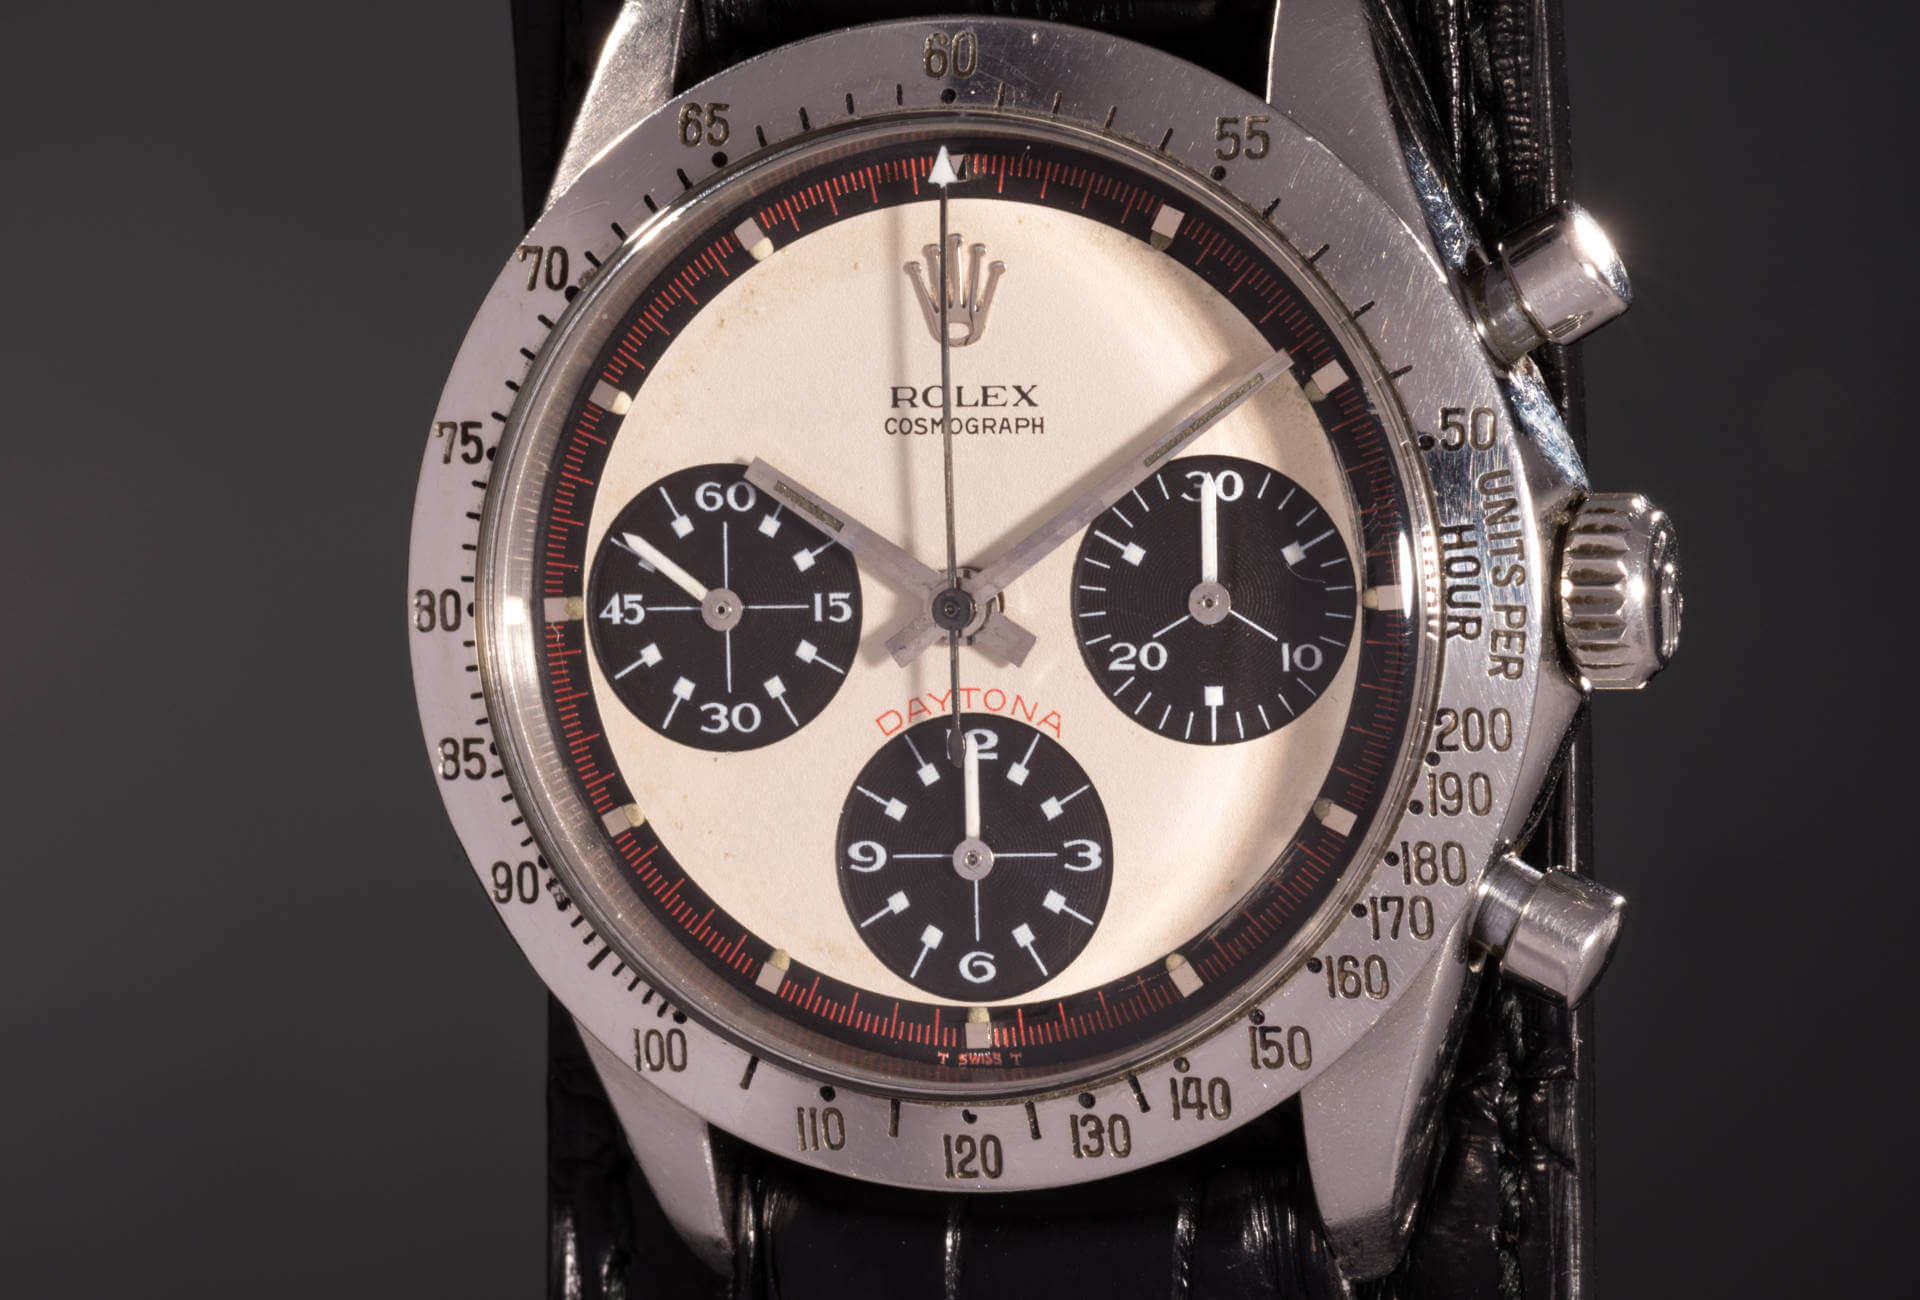 paul newman s rolex daytona under the hammer fhh journal. Black Bedroom Furniture Sets. Home Design Ideas